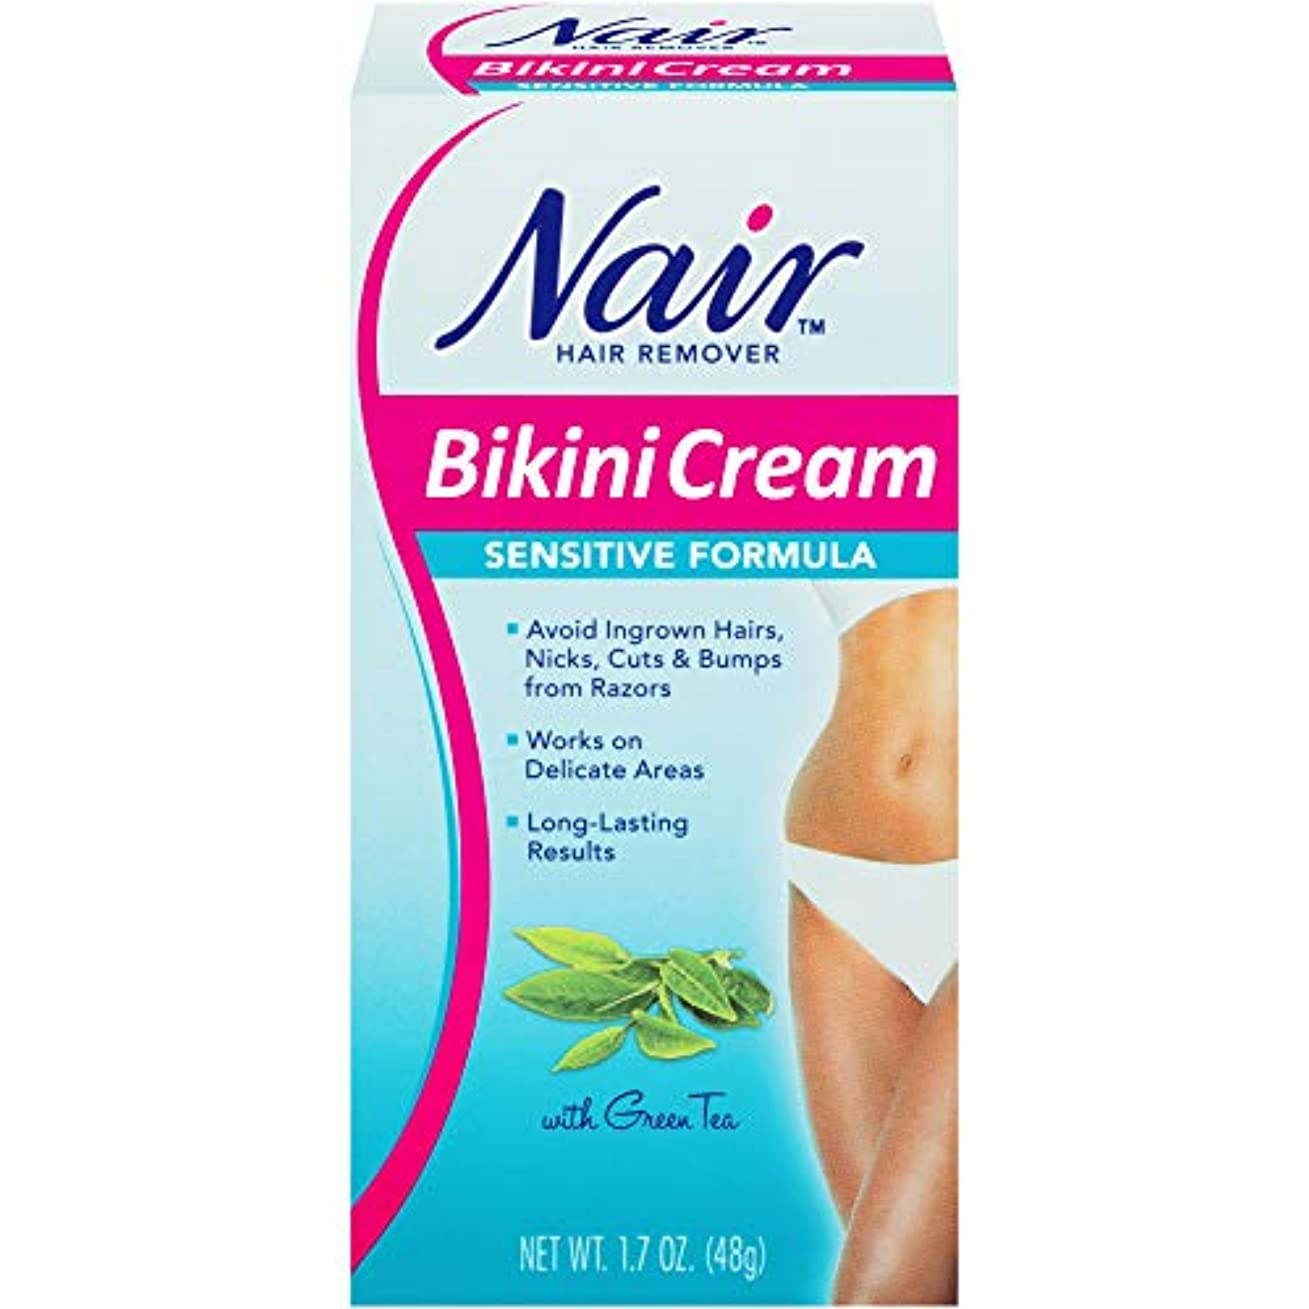 一口ファーザーファージュディスクNair hair remover bikini cream with green tea, Sensitive formula - 1.7 oz (並行輸入品)